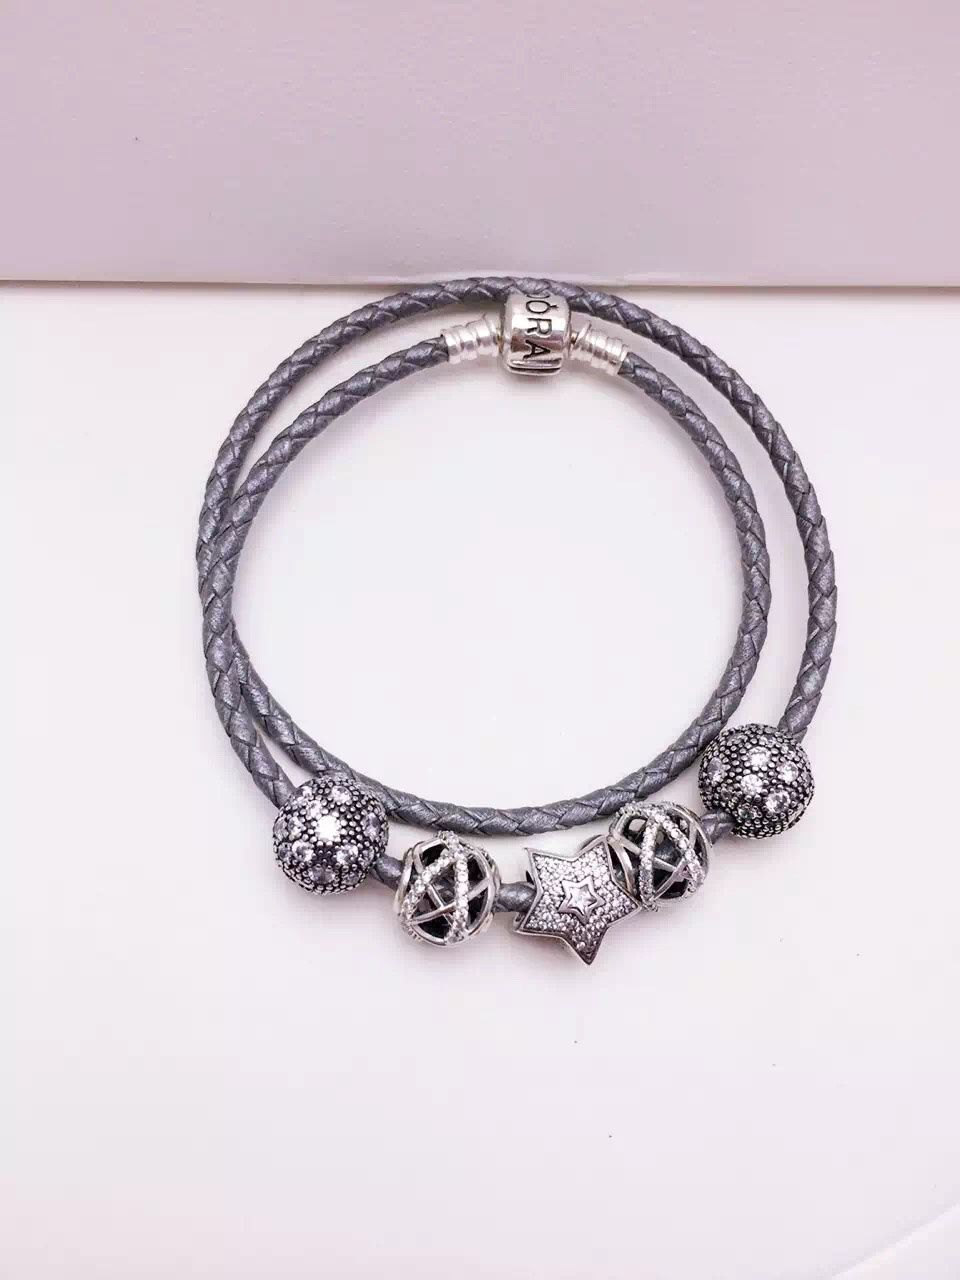 $159 Pandora Sterling Silver Leather Charm Bracelet Cb01240